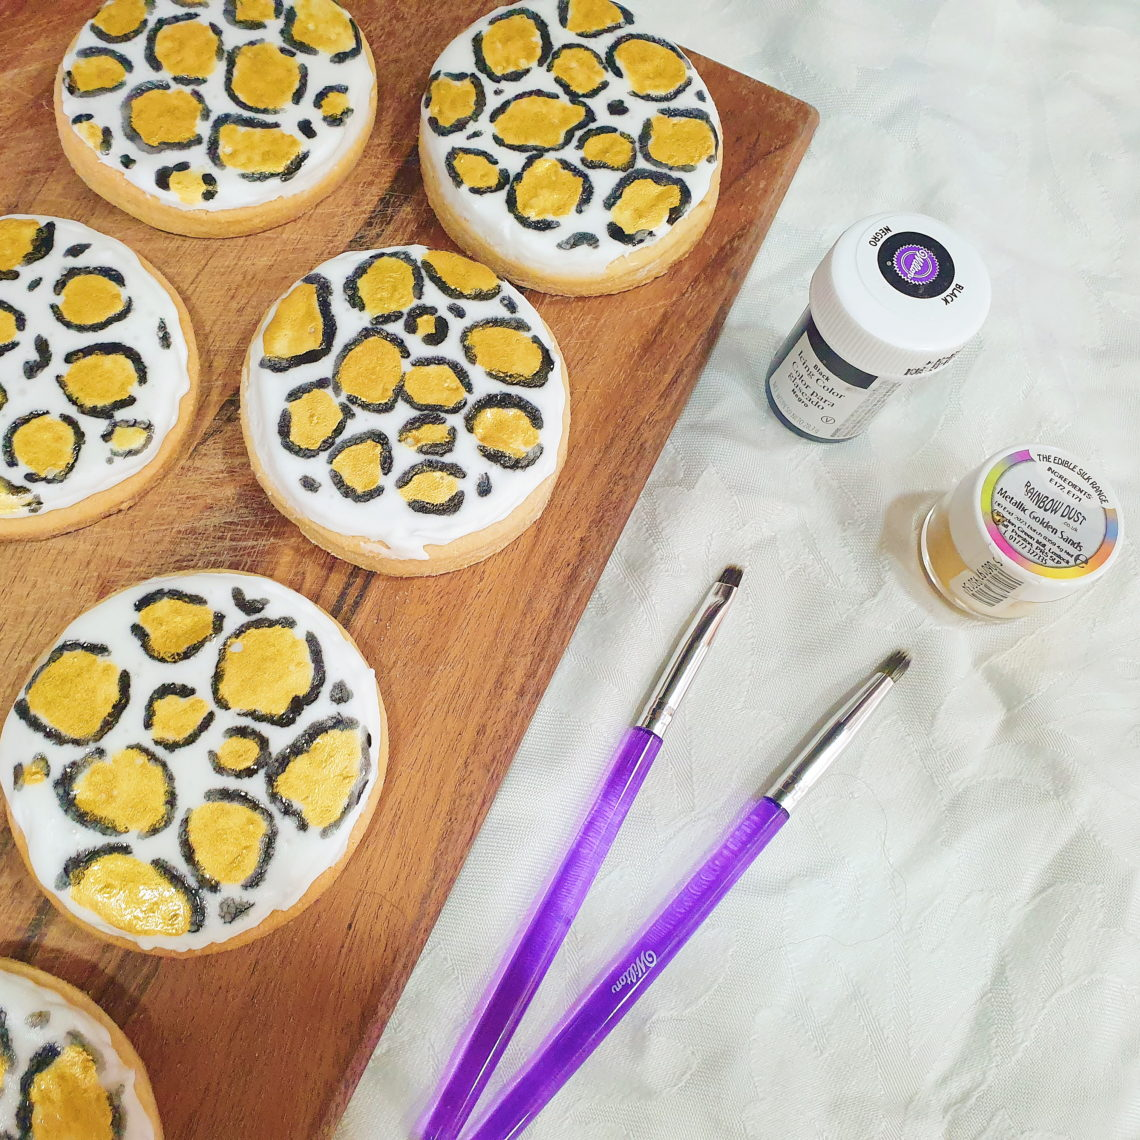 Leopard print cookies on a chopping board, at the side of 2 paint brushes and 2 pots of edible paint